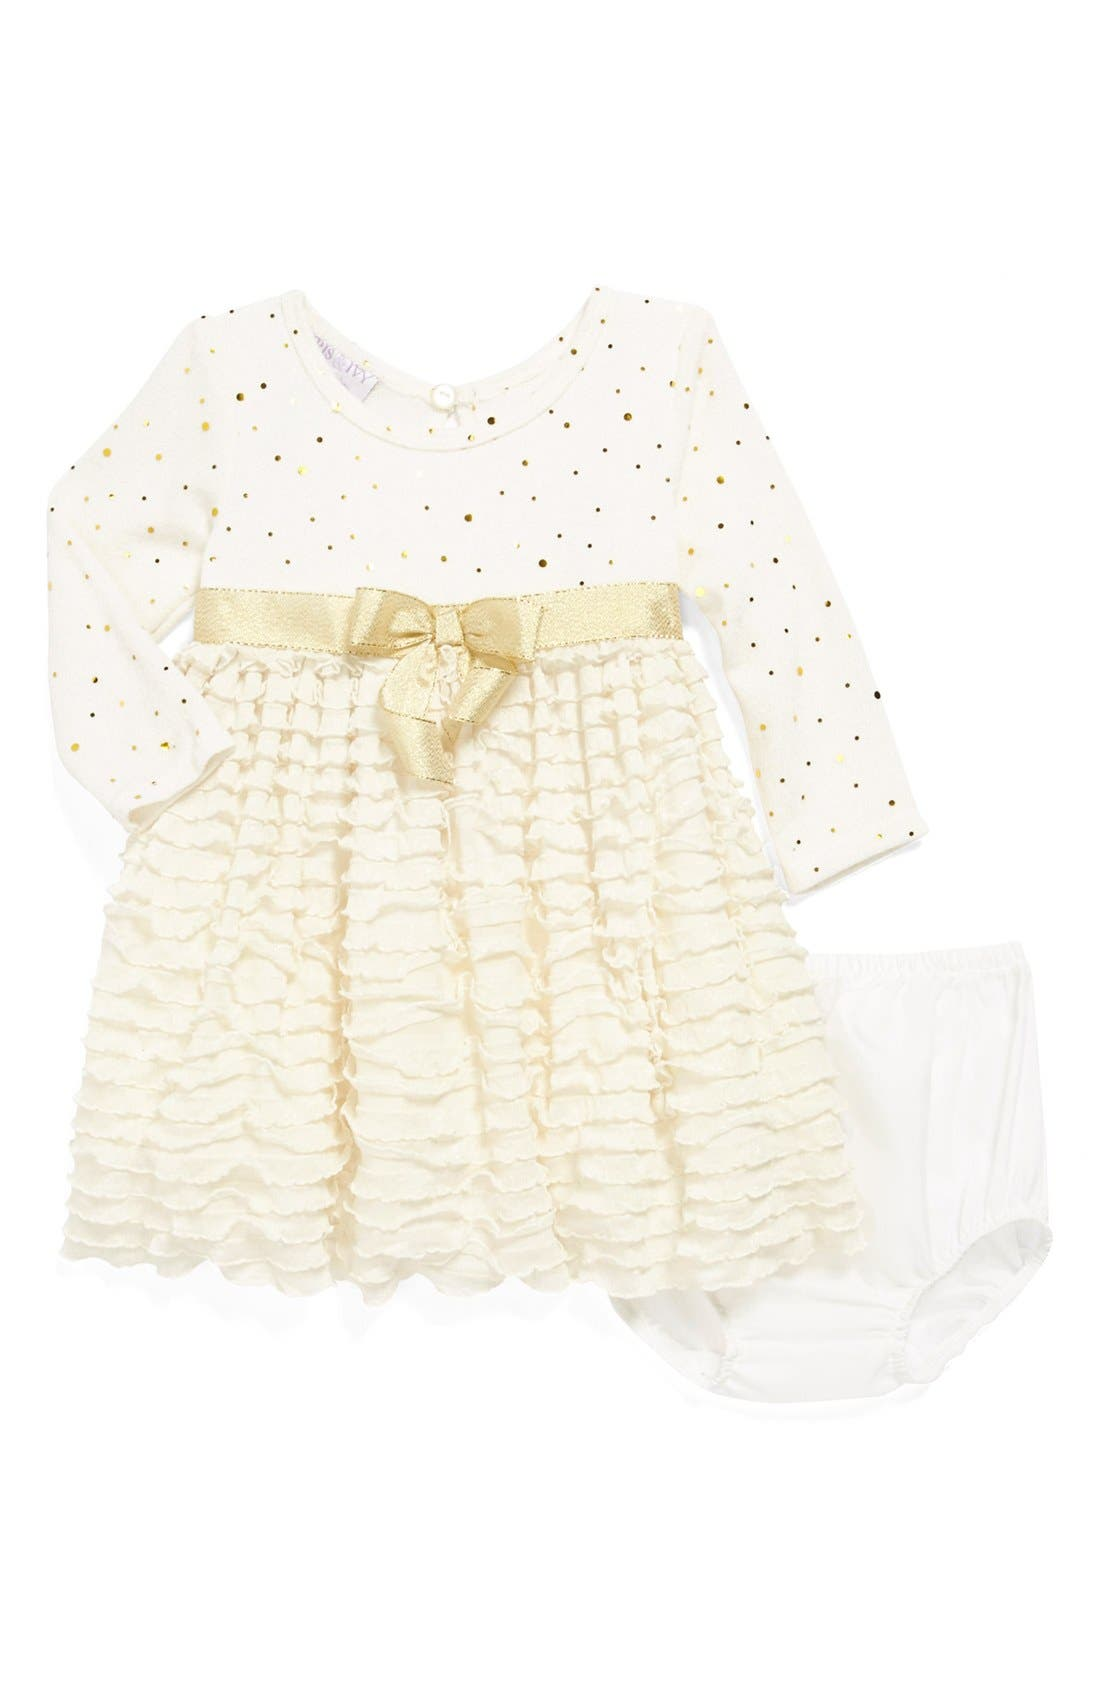 Main Image - Iris & Ivy Glitter Knit Ruffle Skirt Dress (Baby Girls)